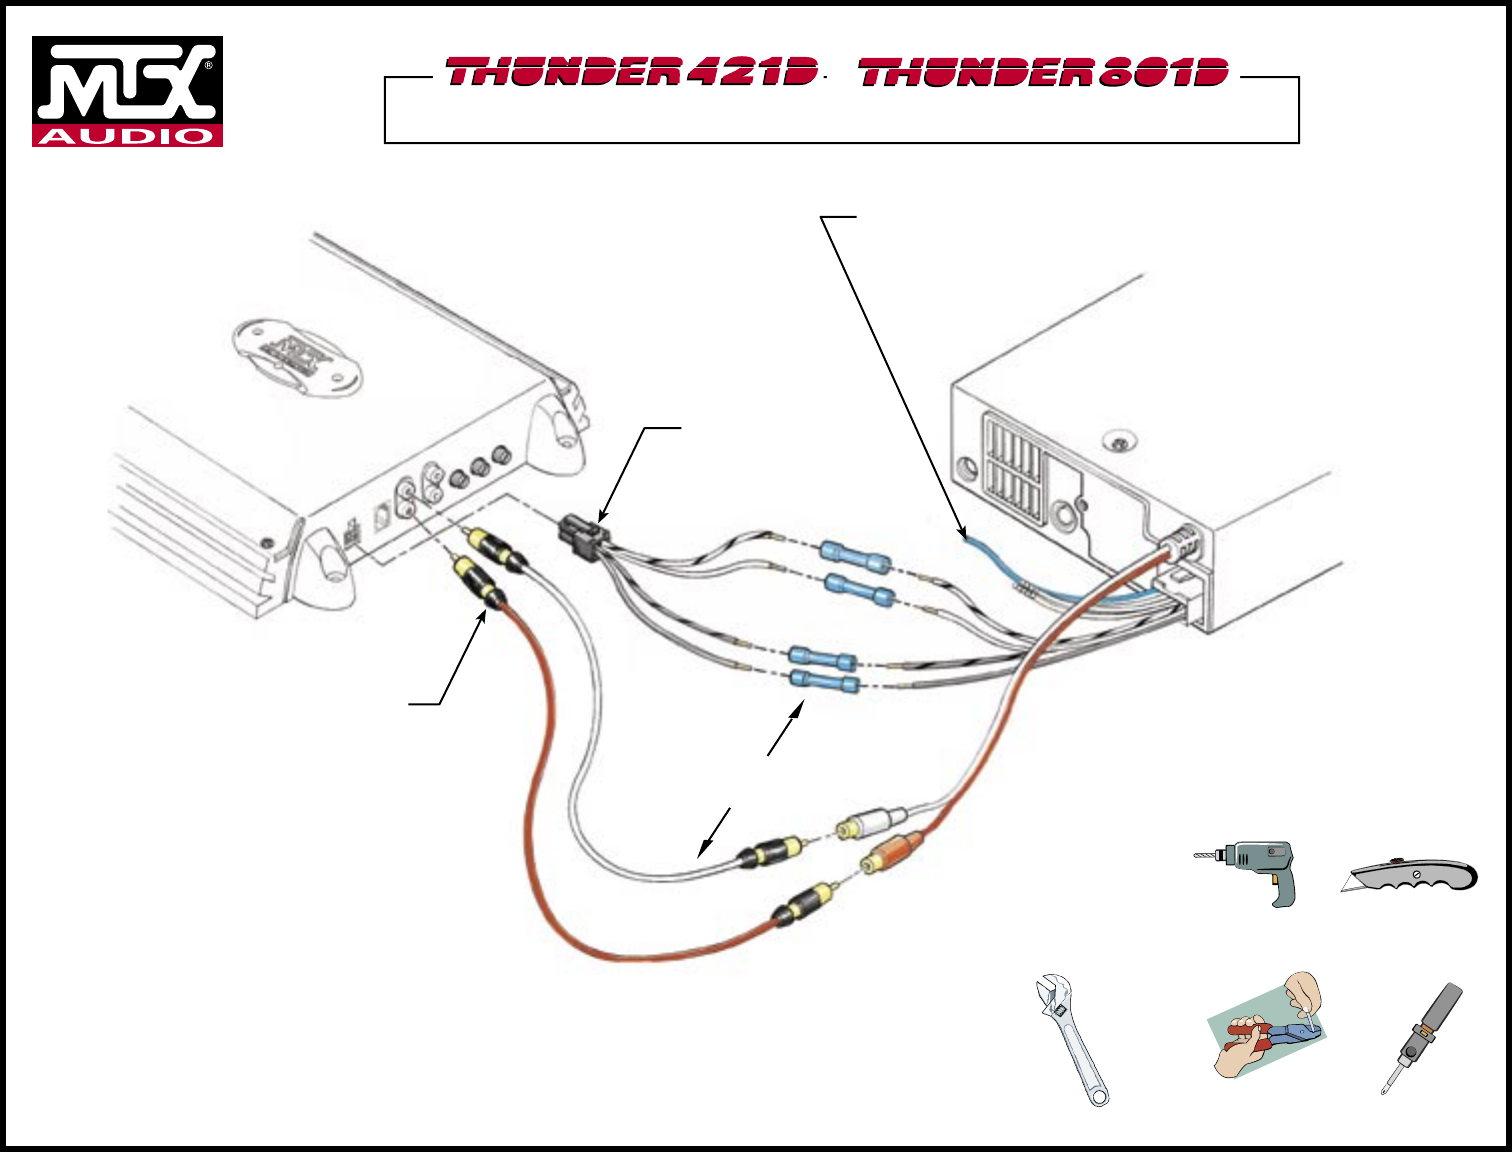 Mtx Audio Car Stereo System Ndm219 User Guide Manualsonlinecom Orion Wiring Diagram Or